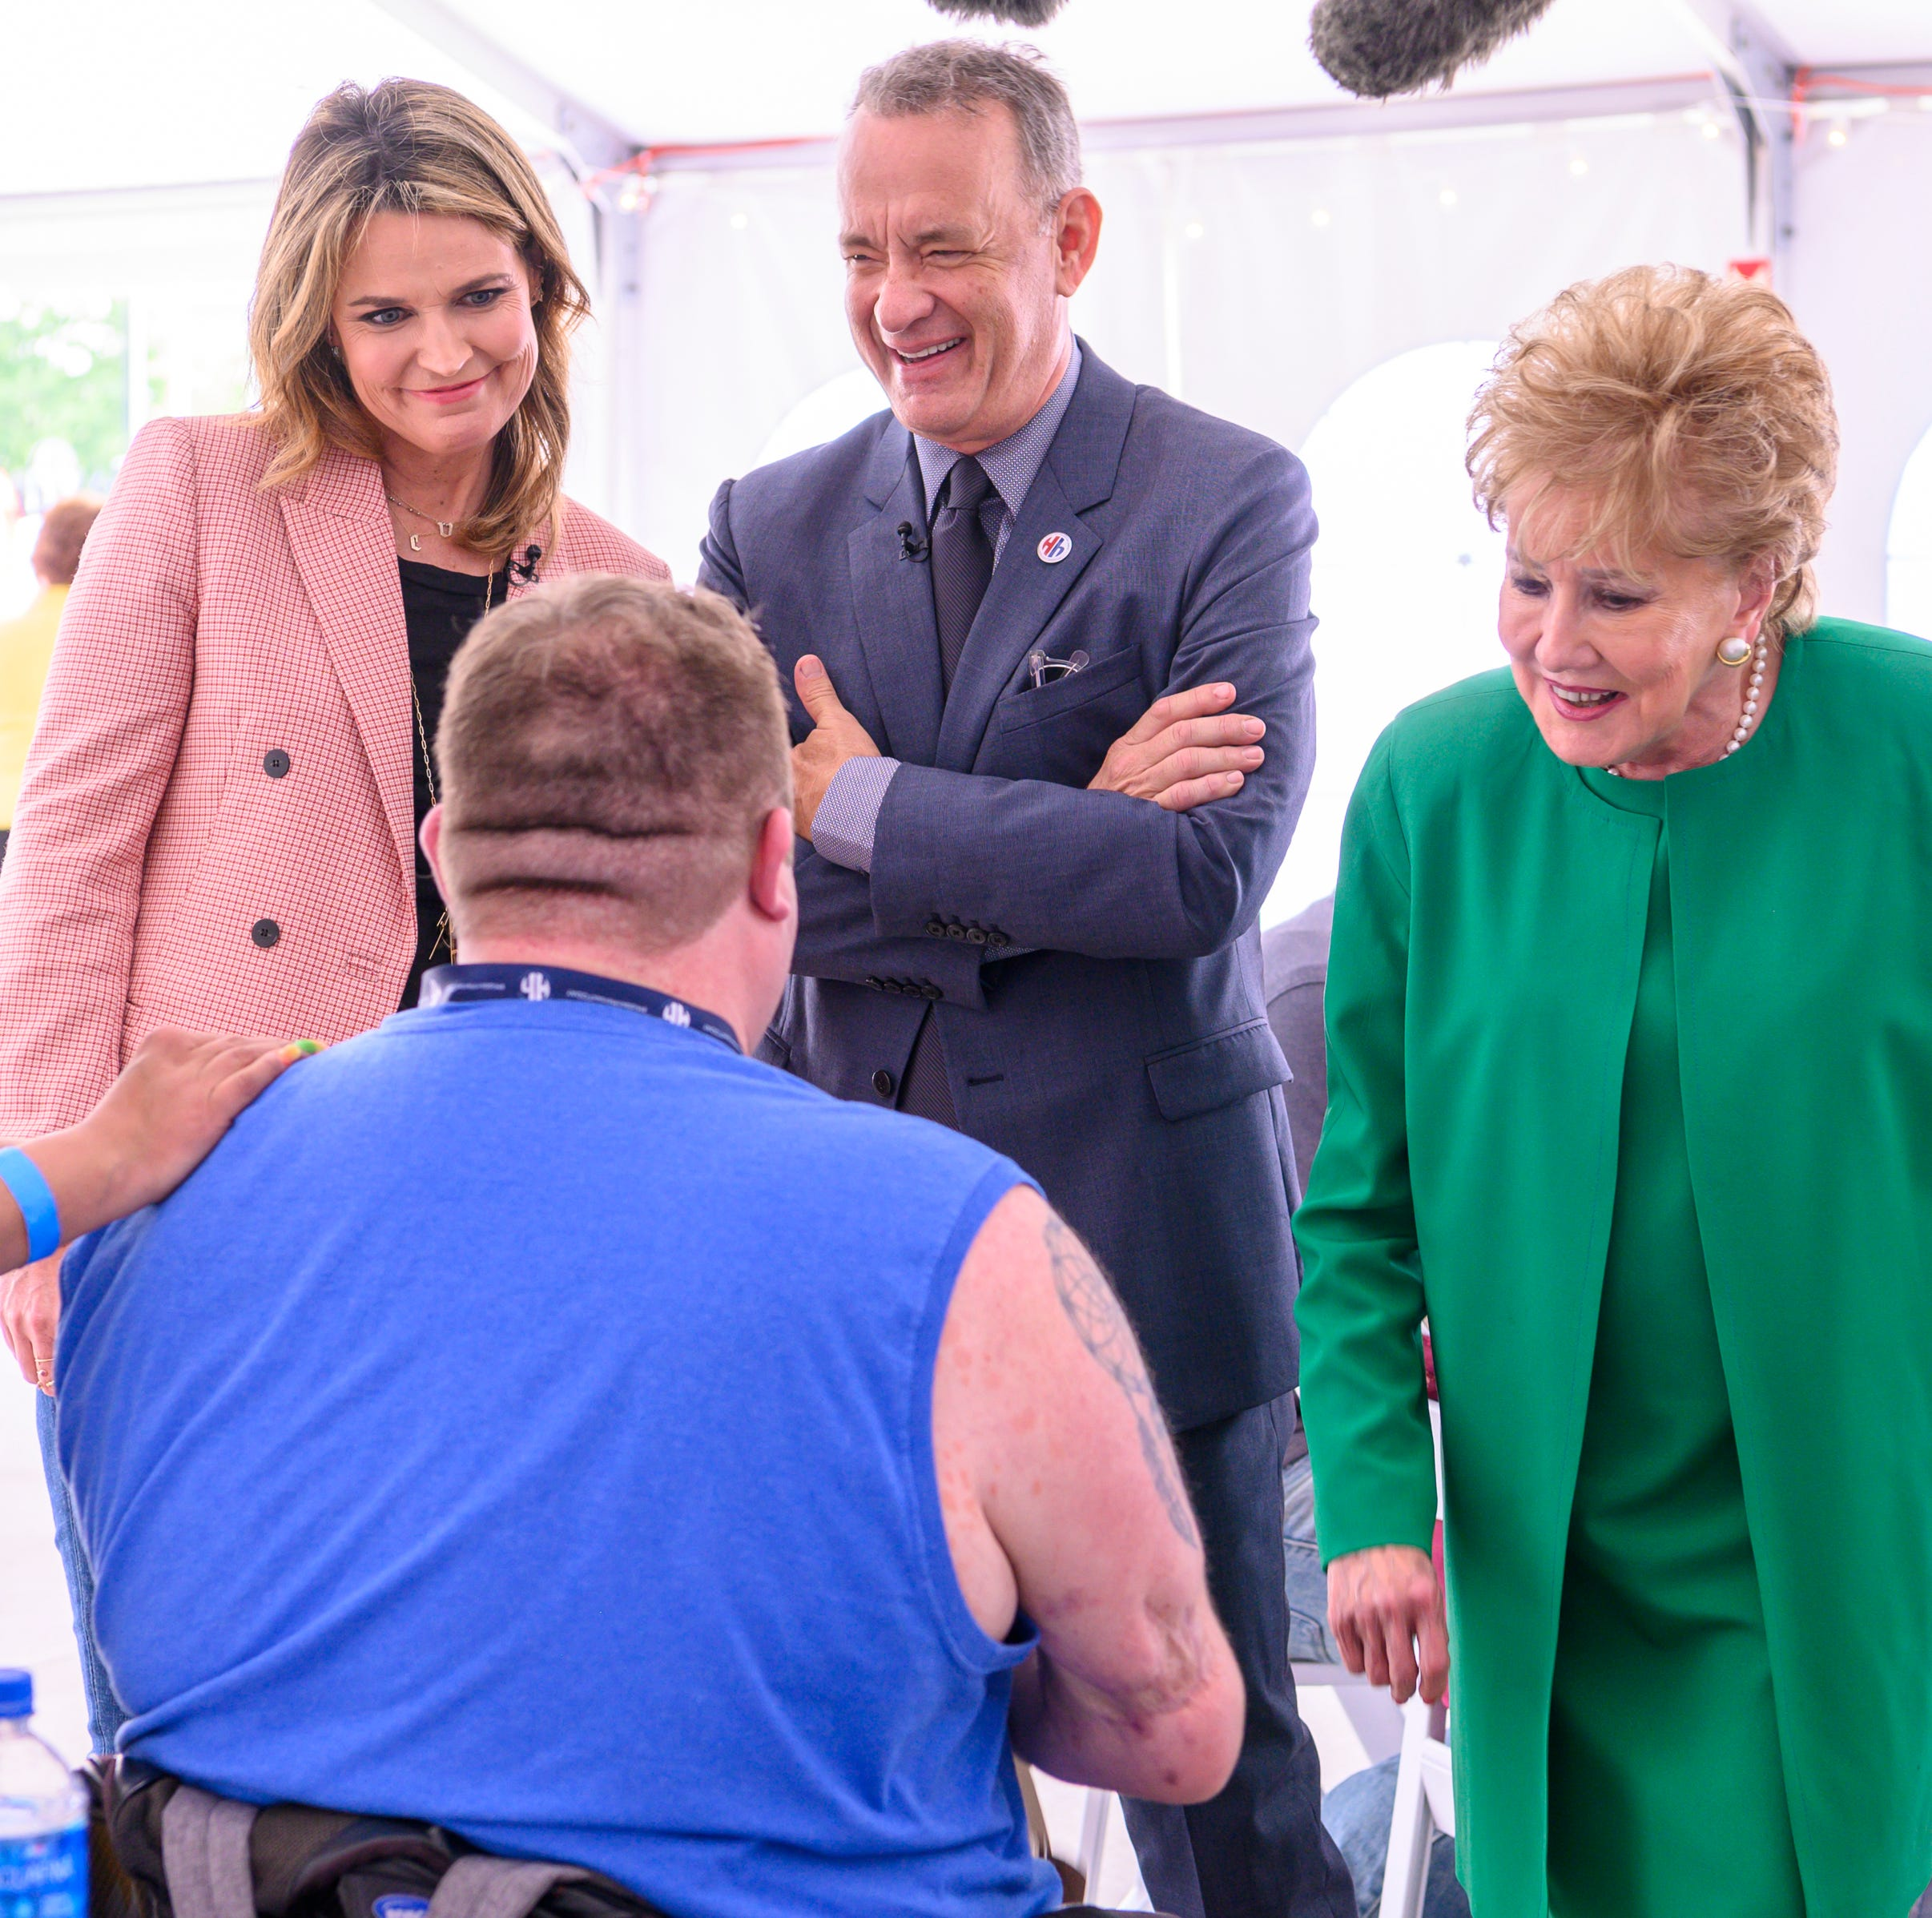 Tom Hanks, Savannah Guthrie and Andrew Luck join Indiana military veterans, caregivers